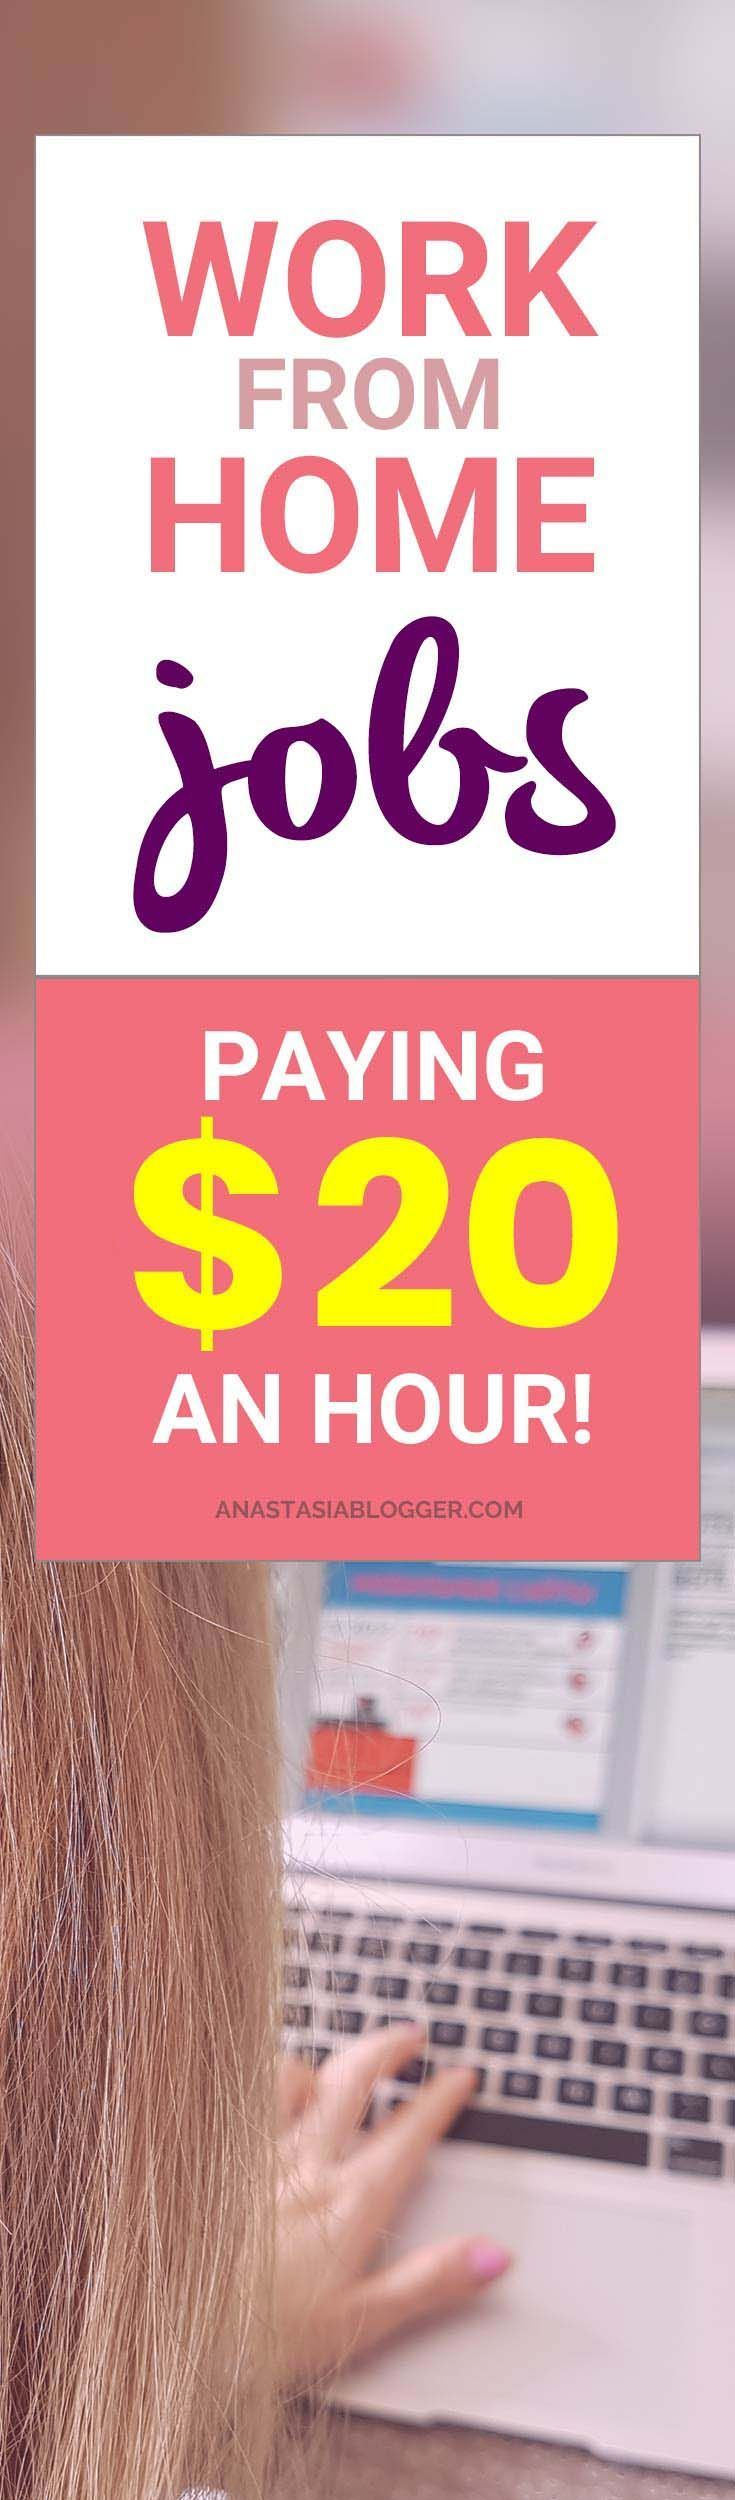 Work from home jobs are flexible and good to make some extra cash. Check the list of legit companies paying $20 an hour or more! WAH jobs for stay at home moms in transcription, translations, editing, proofreading, medical coders, online tutors, phone customer support and others! #workfromhome #workathome #wahm